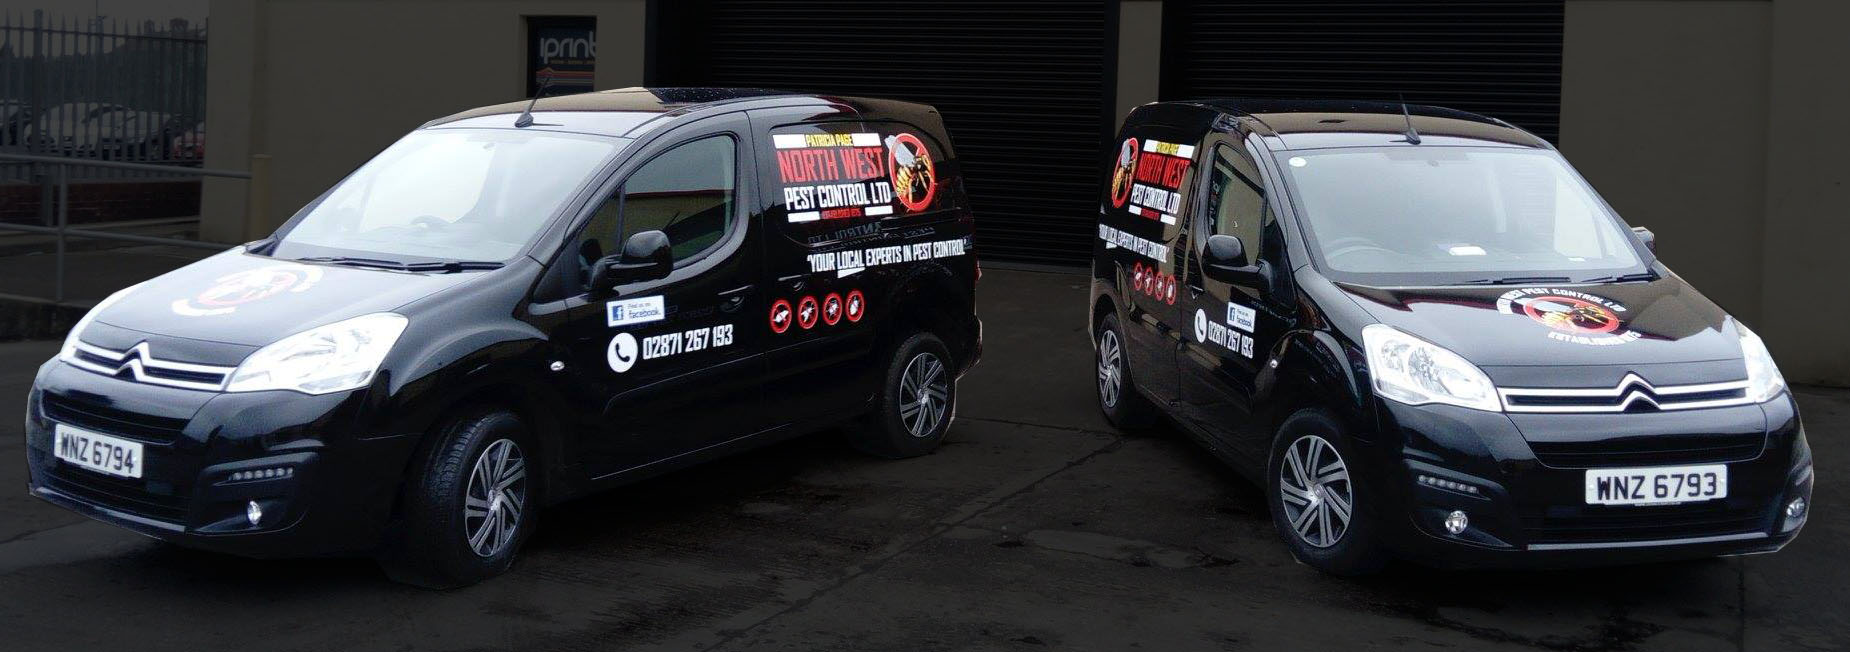 Vehicle Graphics - NW Pest Control